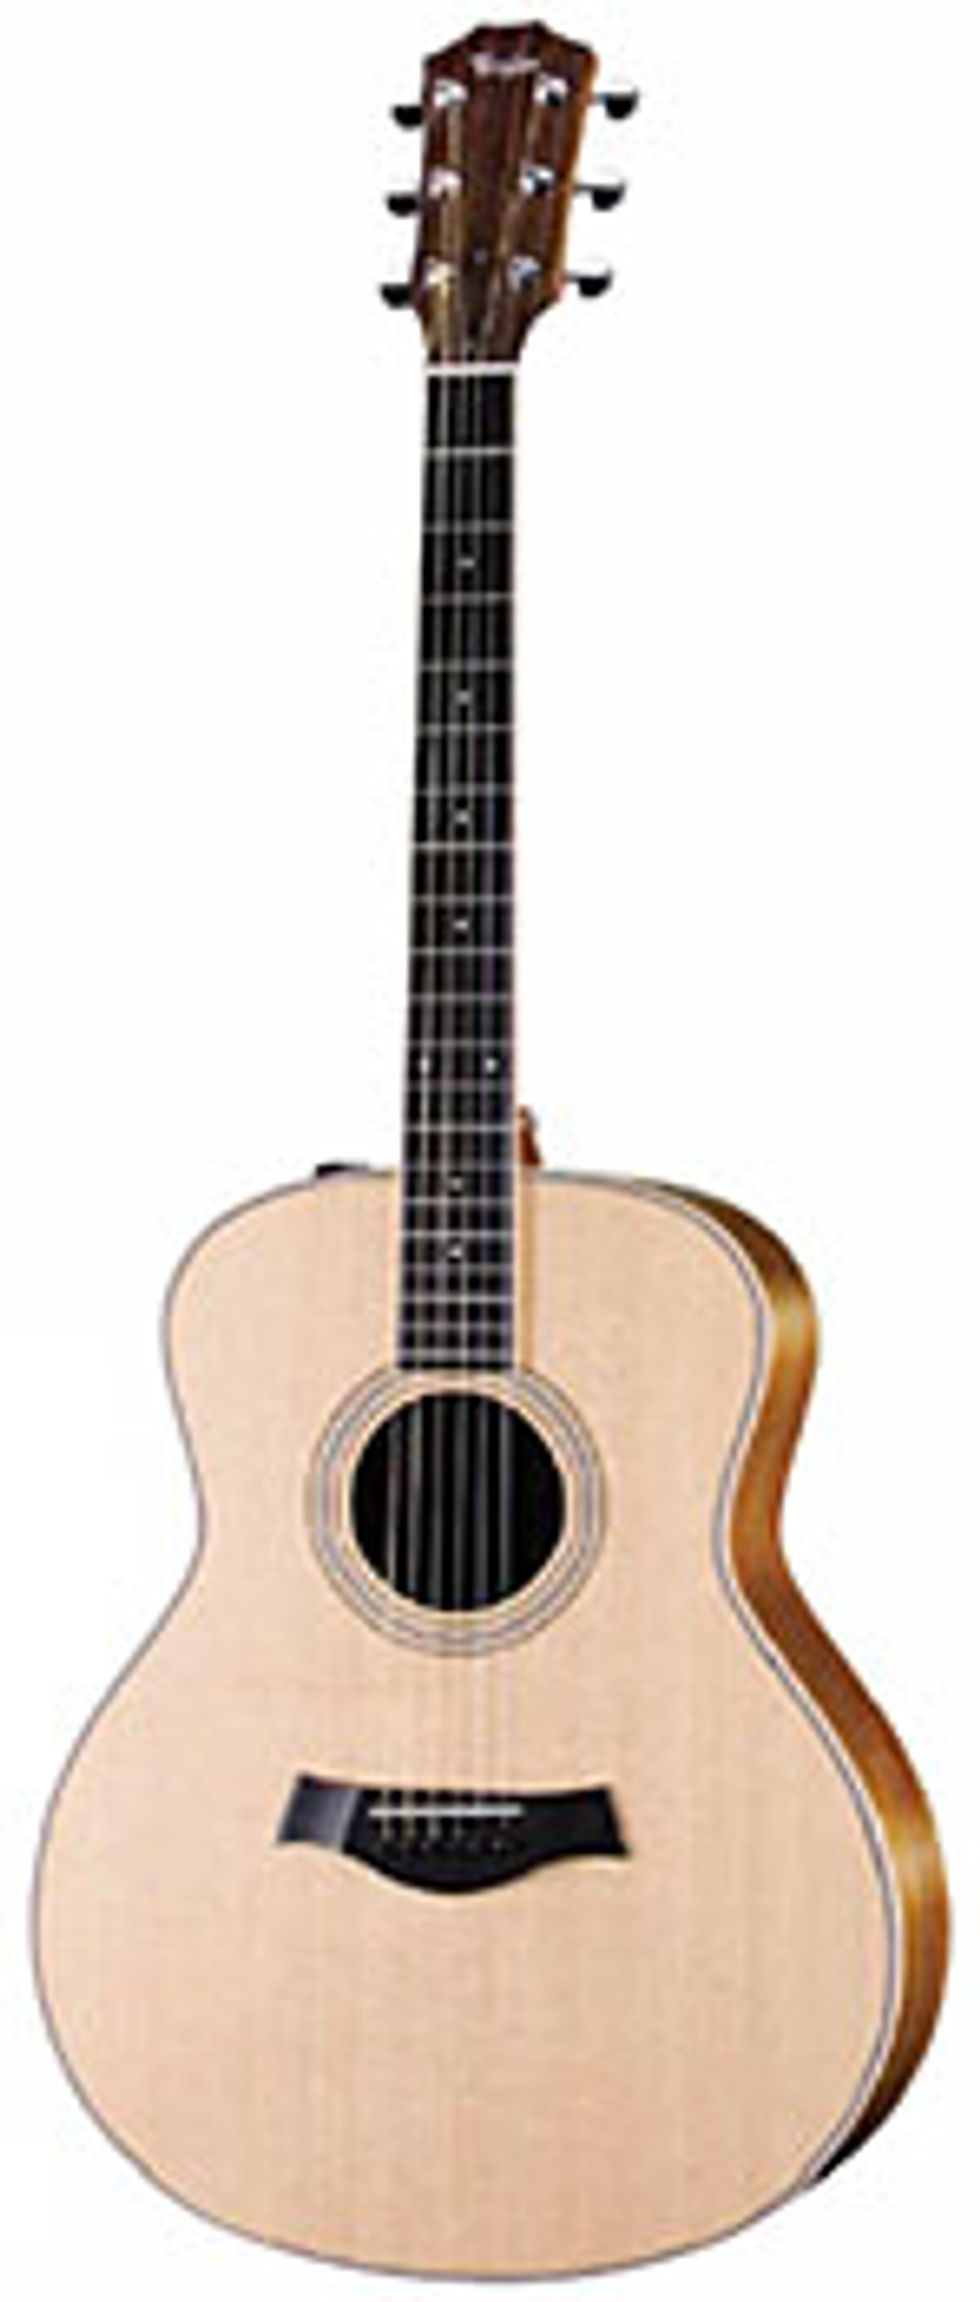 Taylor GS4-E-LTD Acoustic